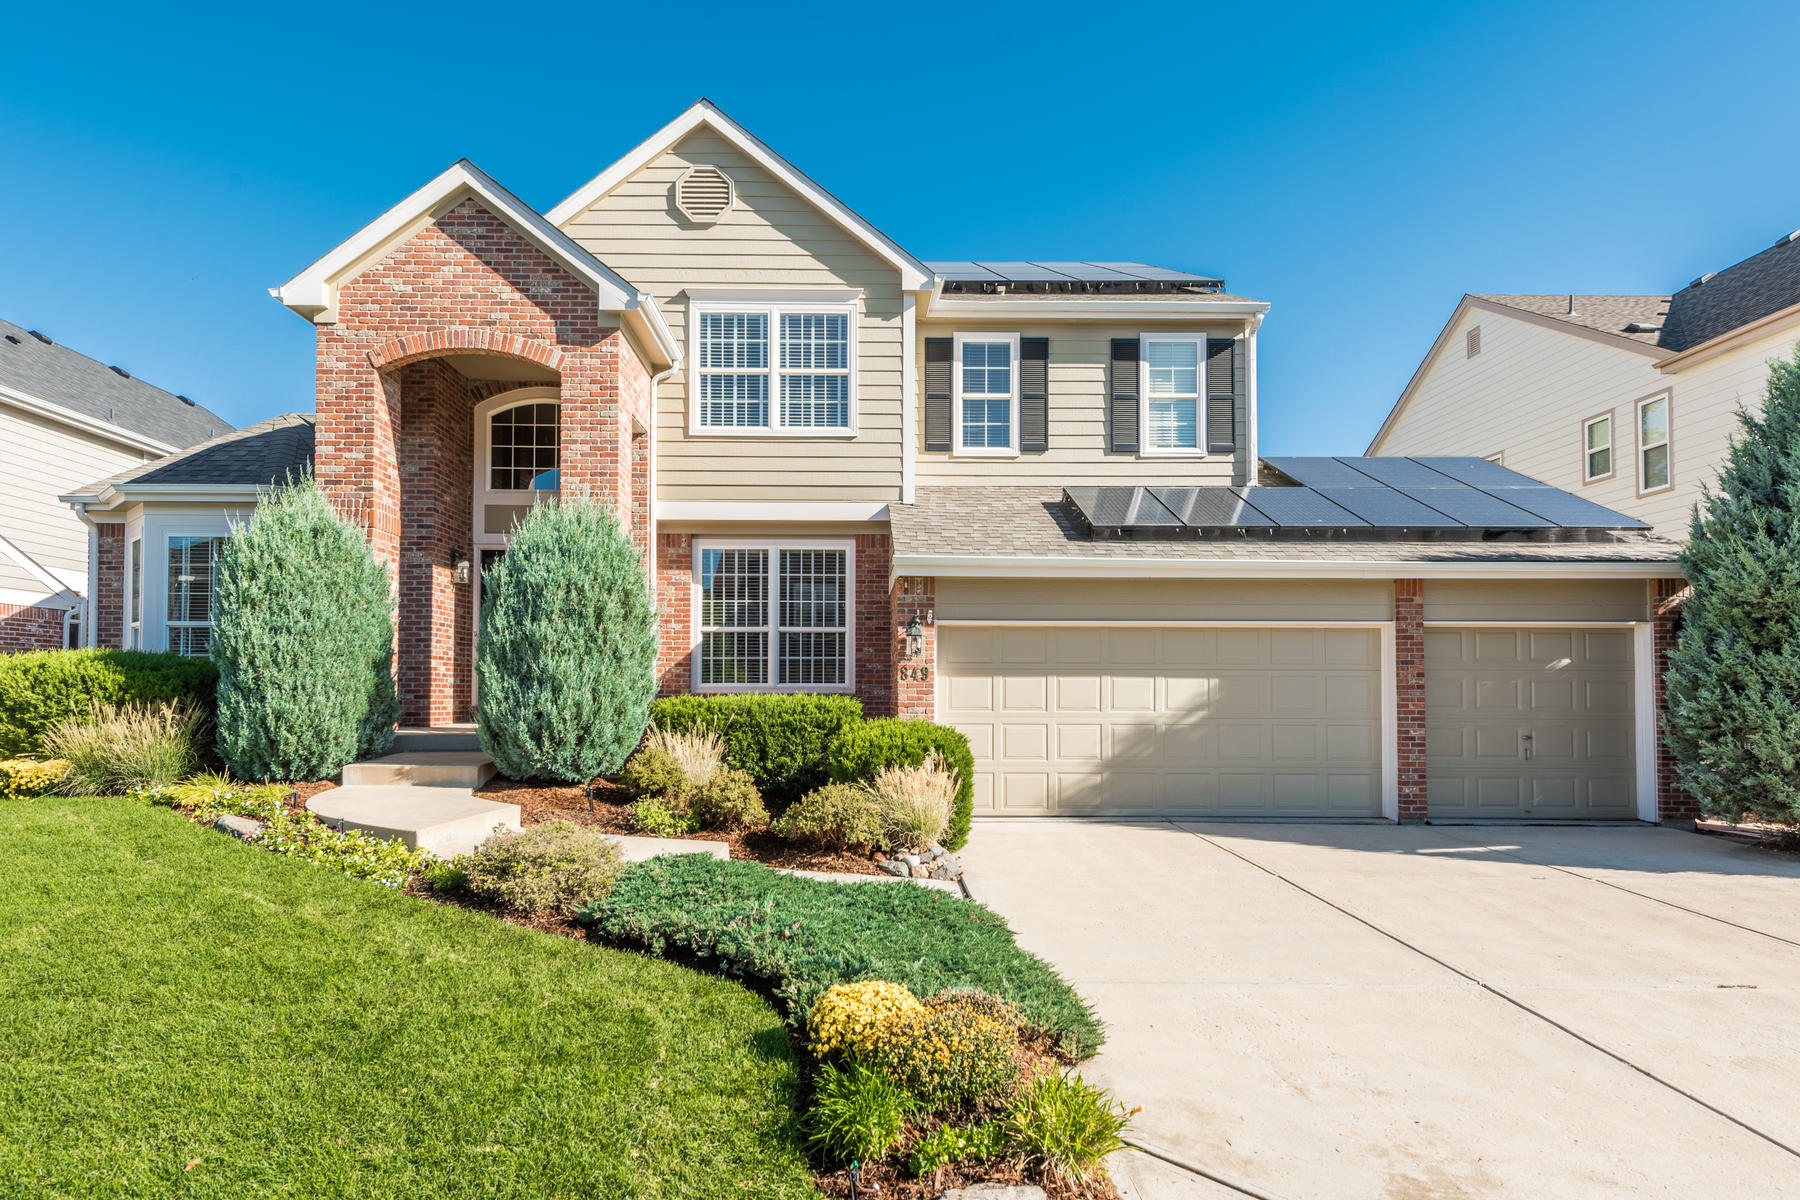 Single Family Home for Active at You will feel right at home in this classic two story in the Weatherstone! 849 Countrybriar Ln Highlands Ranch, Colorado 80129 United States